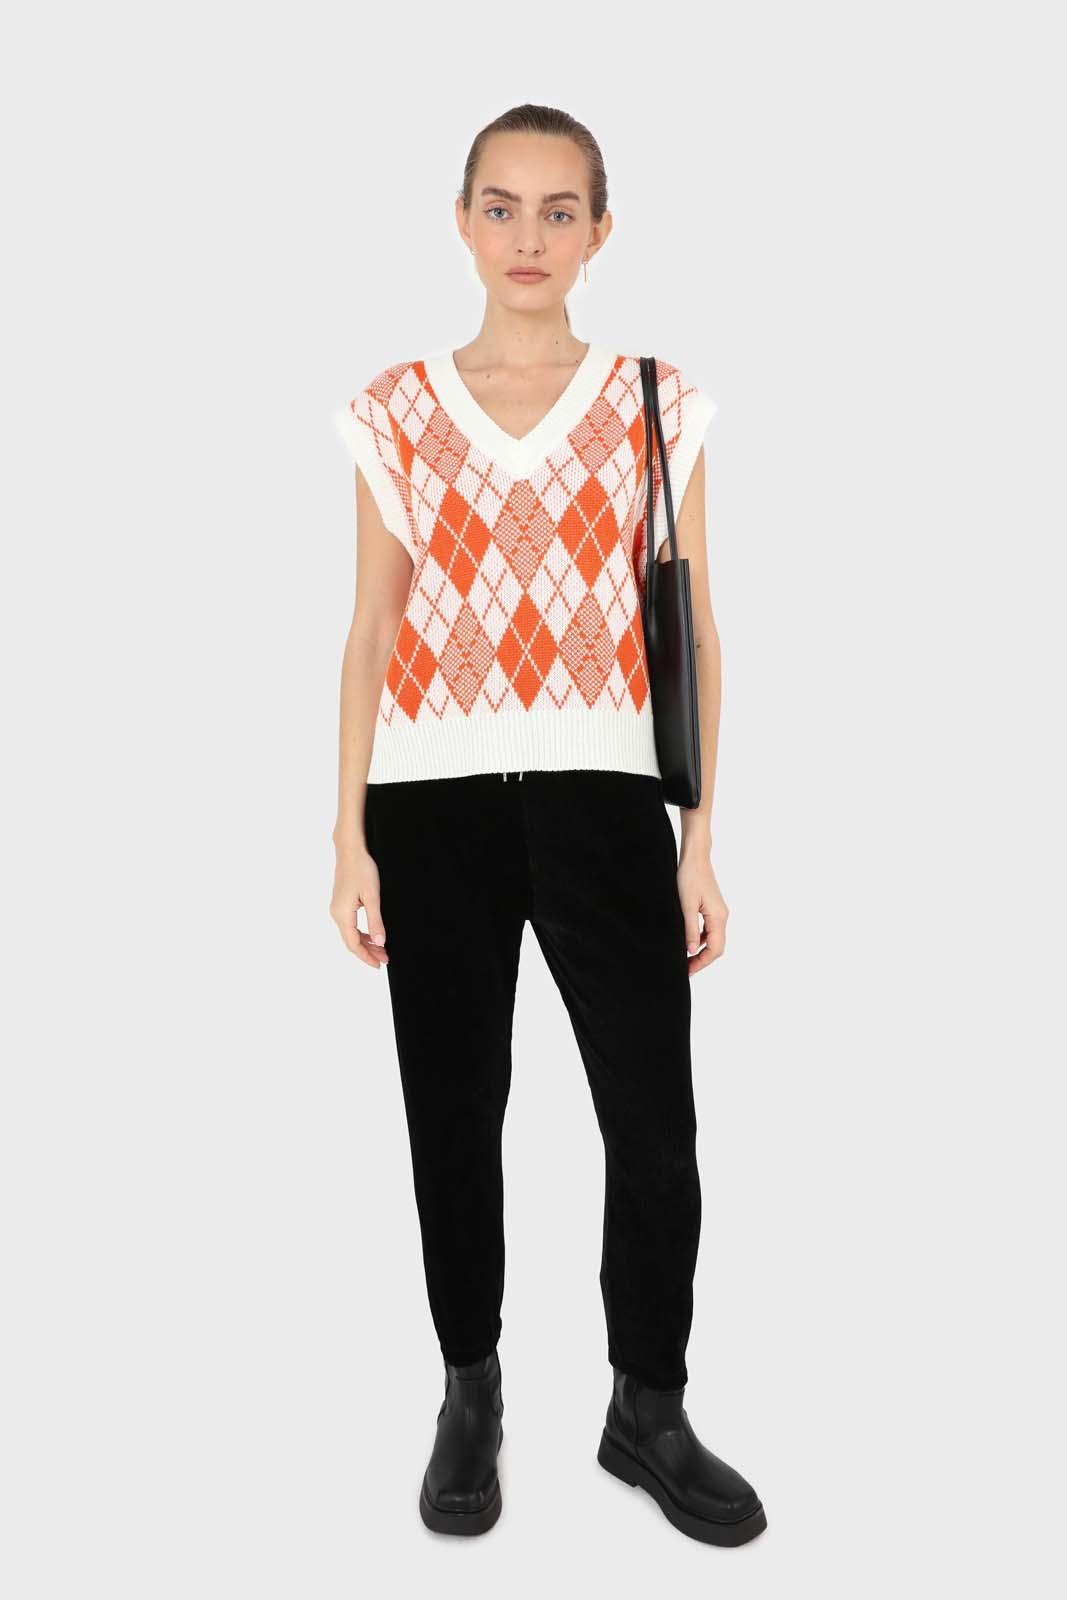 Ivory and orange bright argyle knit vest2